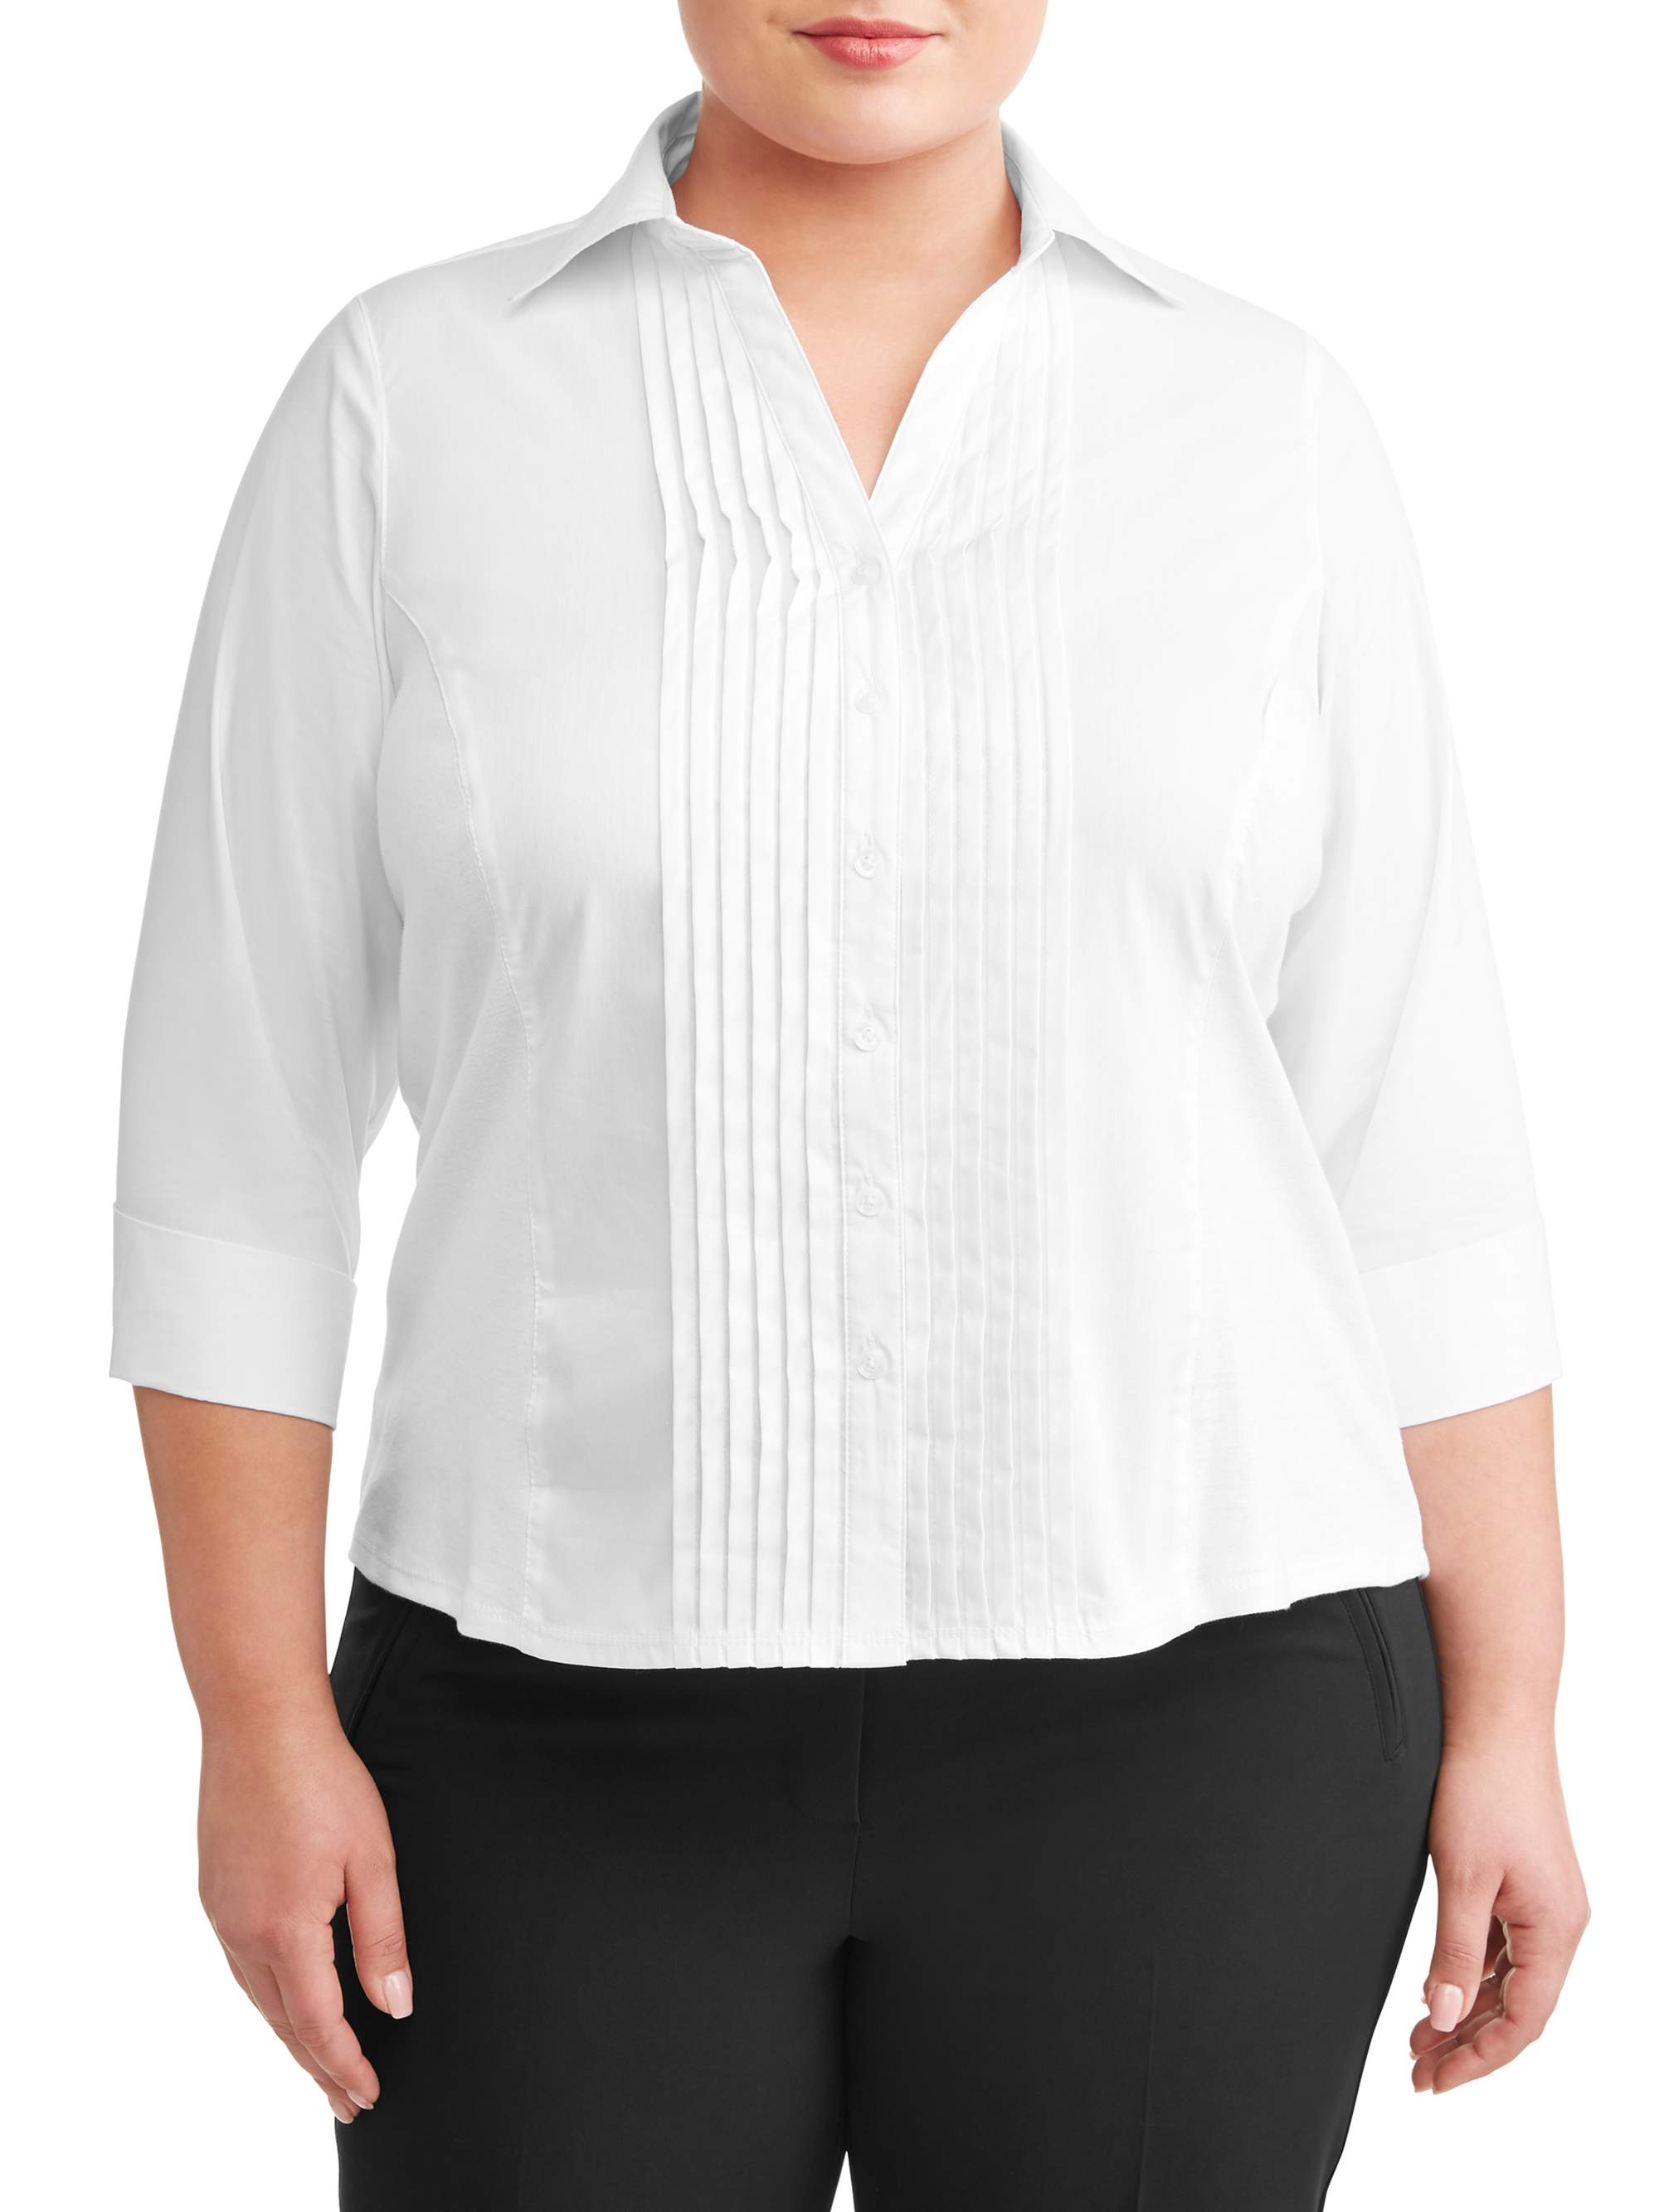 Women's Plus Sized Career Knit to Fit Blouse